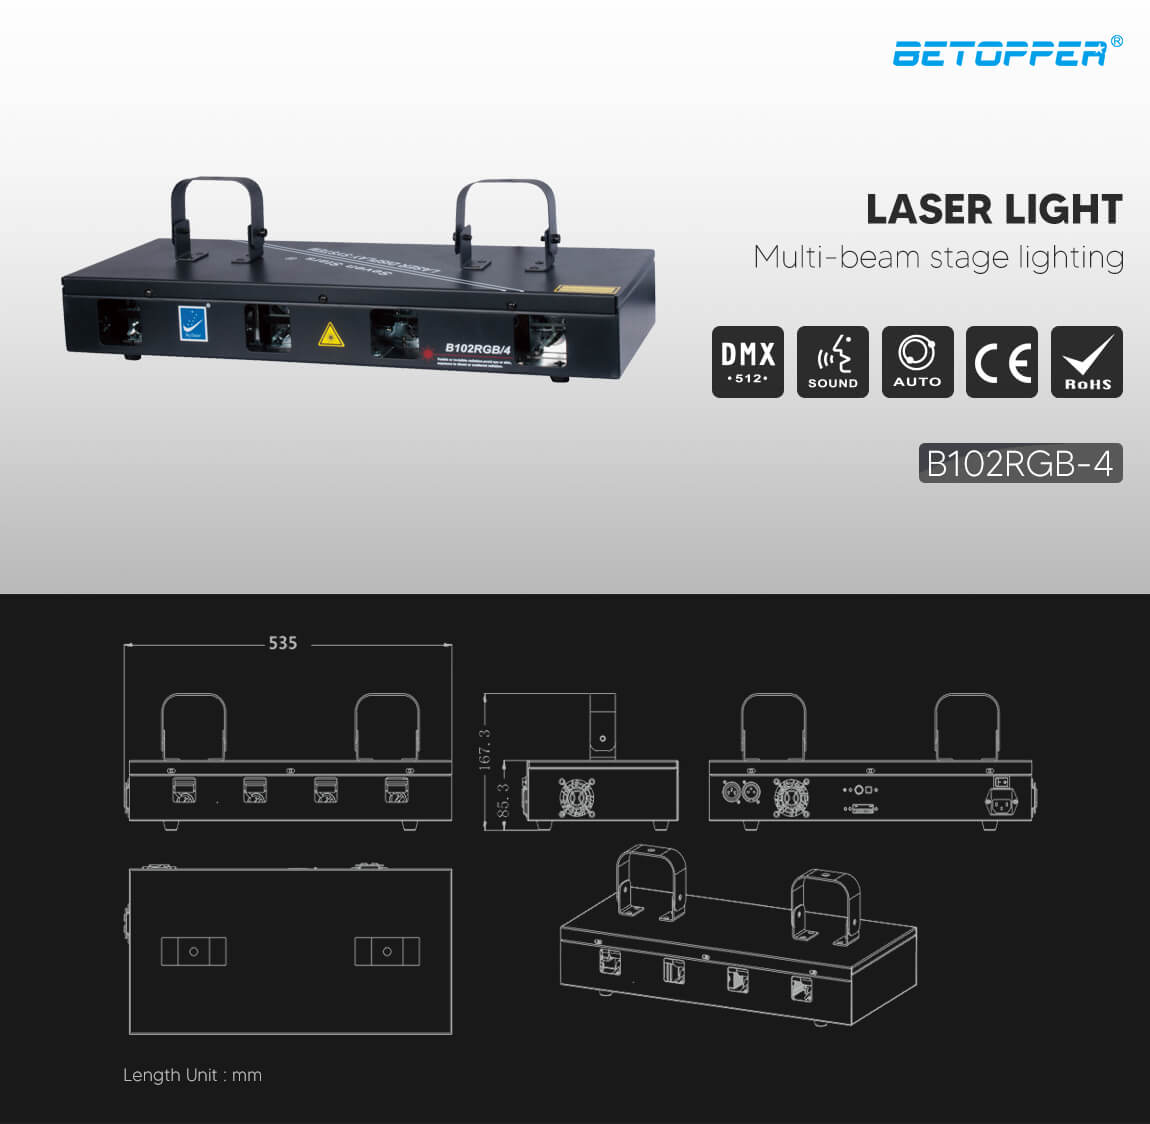 BETOPPER laser light 4heads rgb complete stage lighting system B102RGB/4  Exterior Dimensions